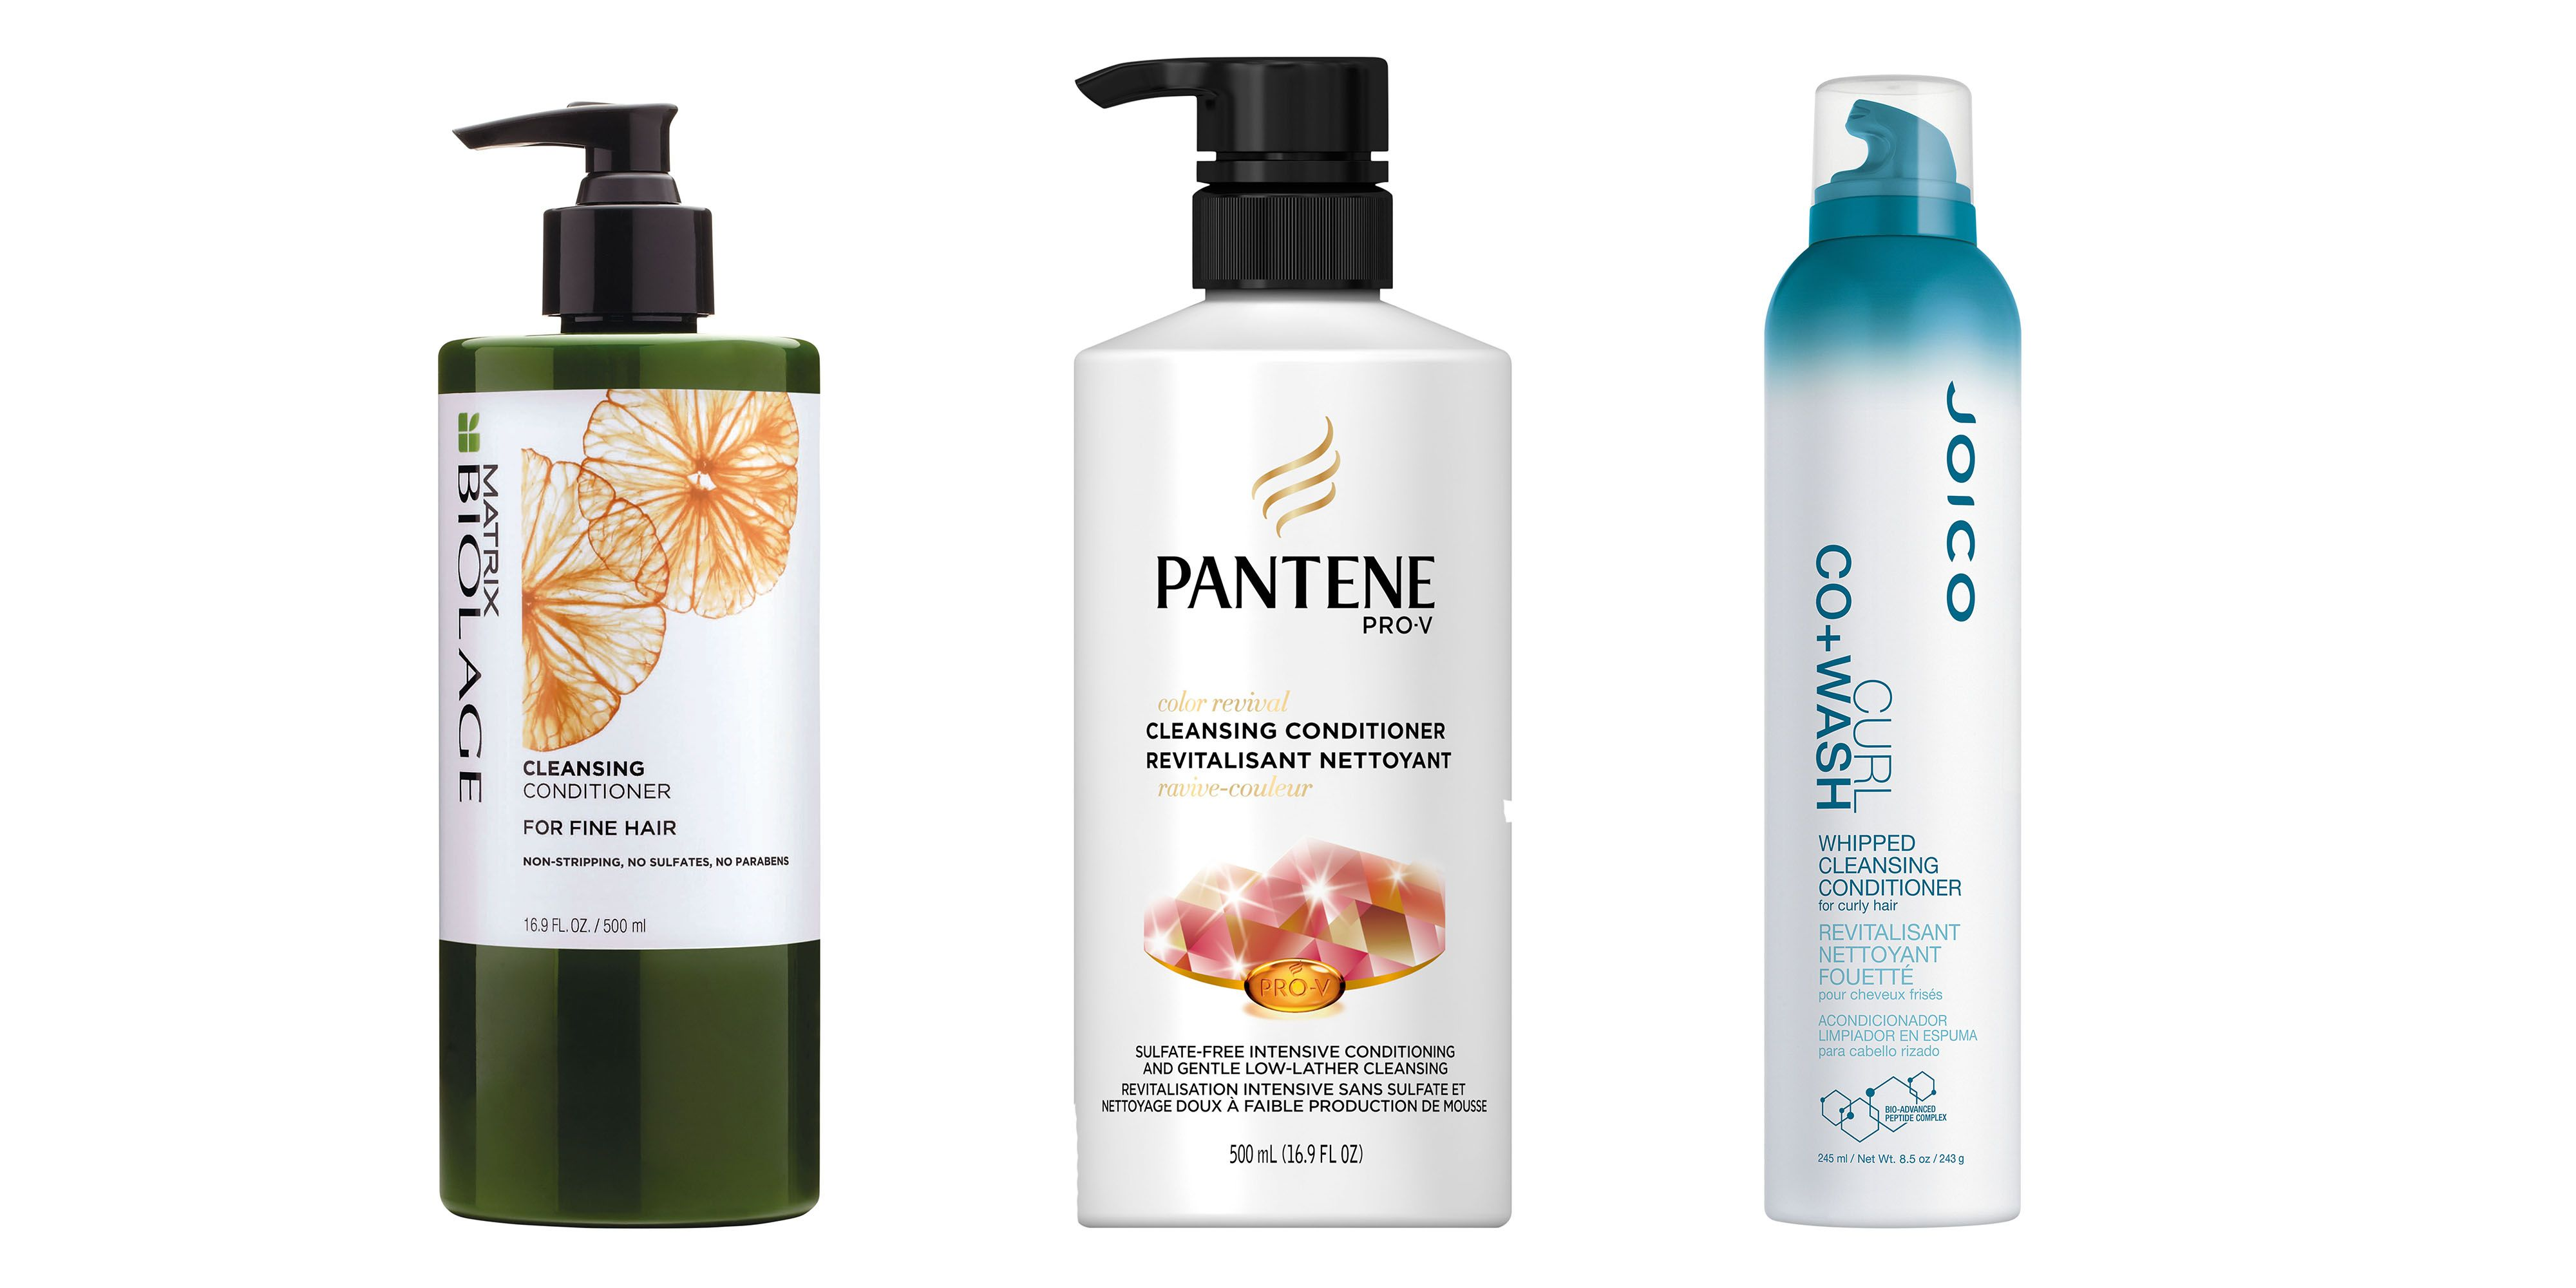 7 Best Cleansing Conditioners Shampooing Conditioners To Try